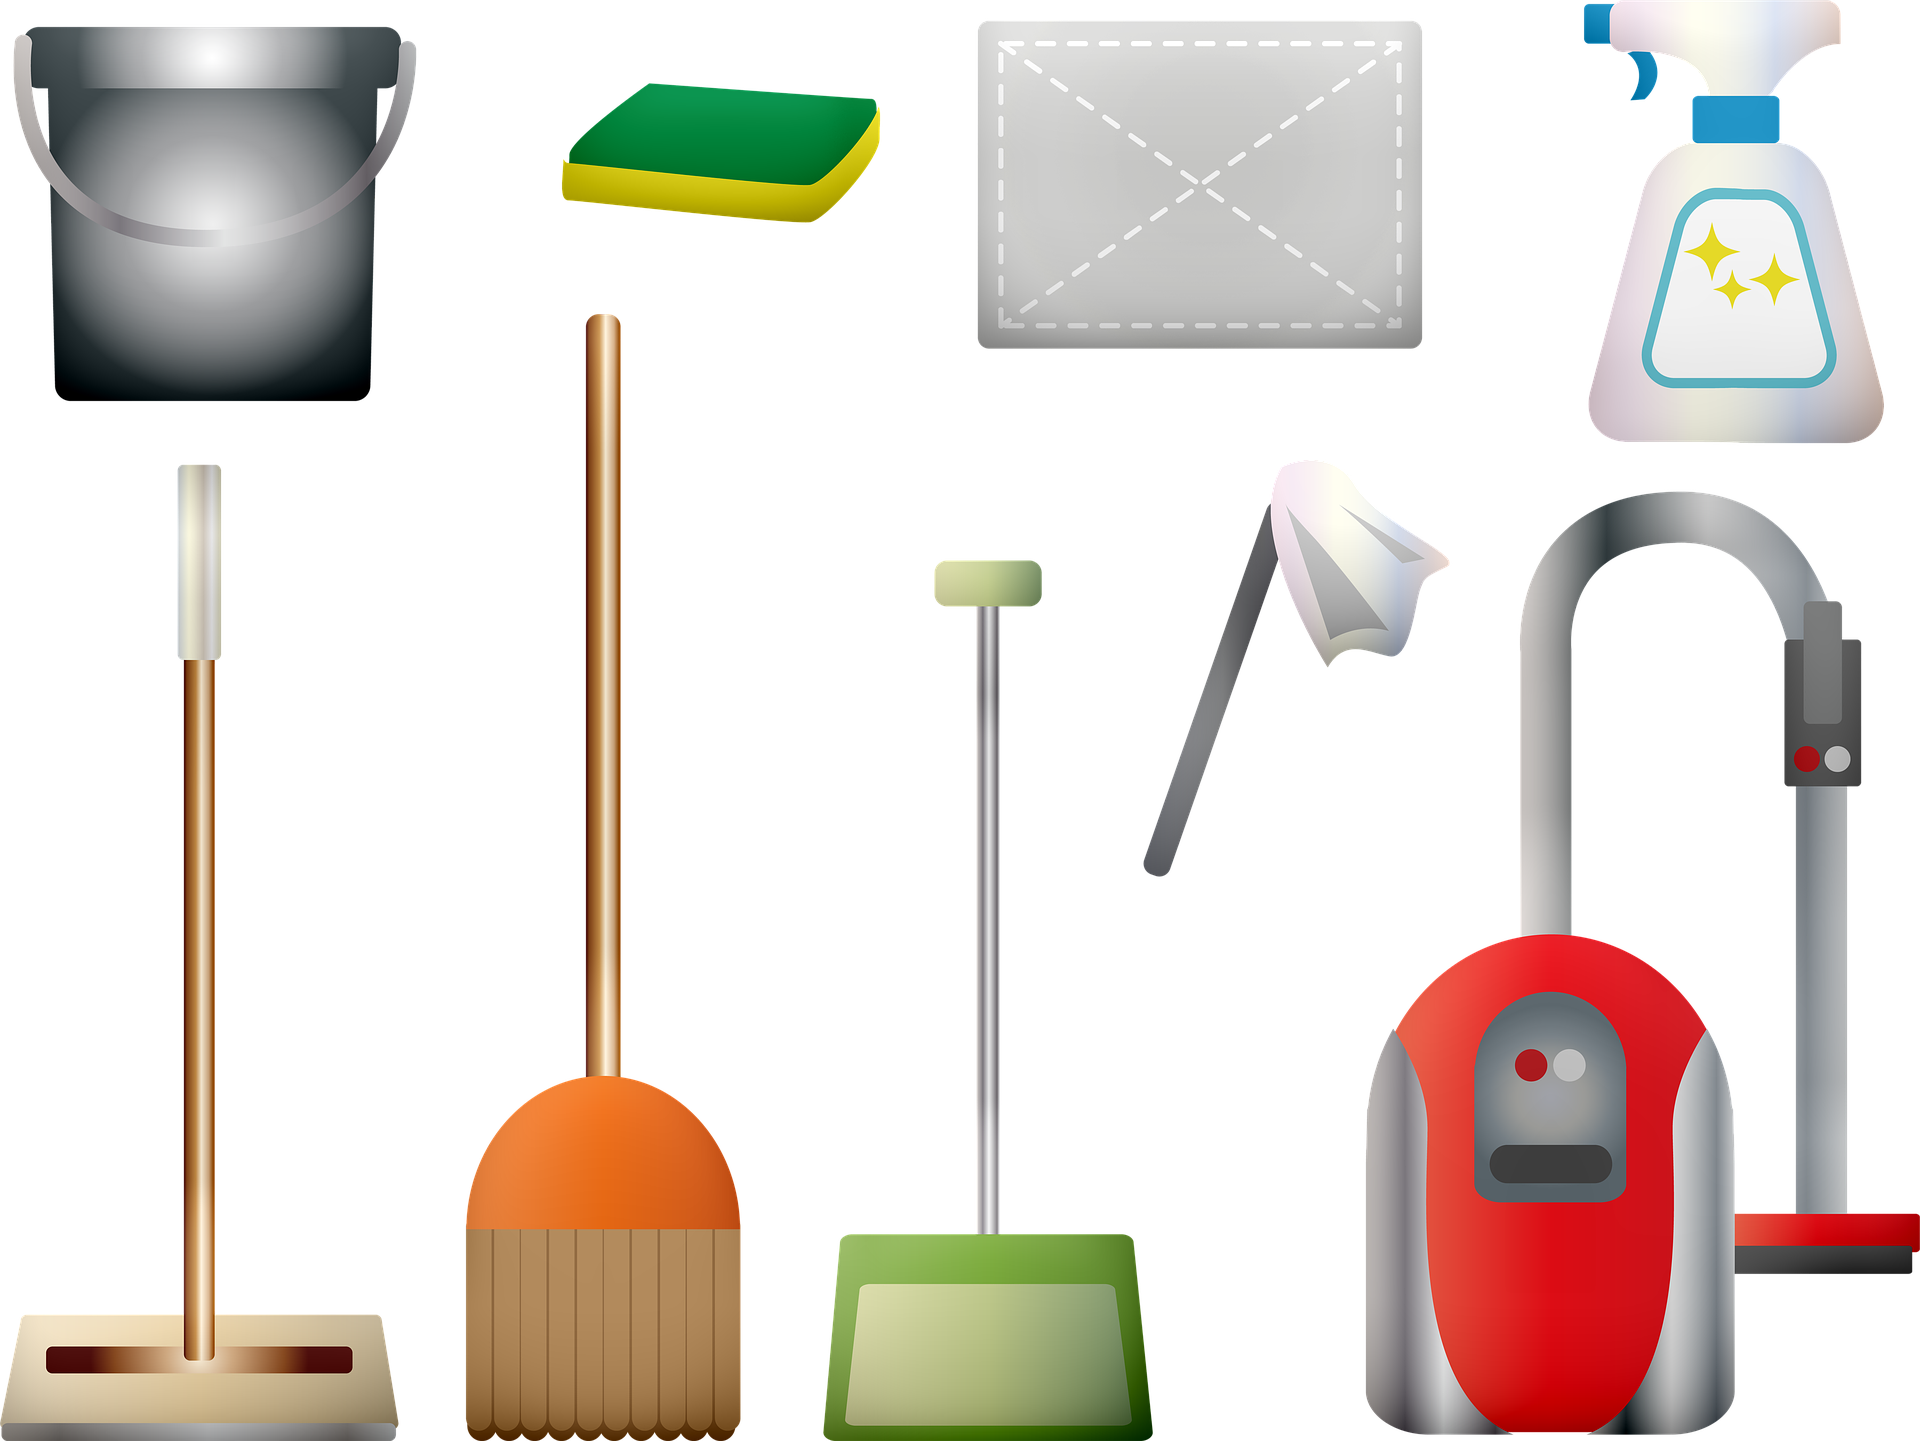 cleaning-supplies Image by Annalise Batista from Pixabay